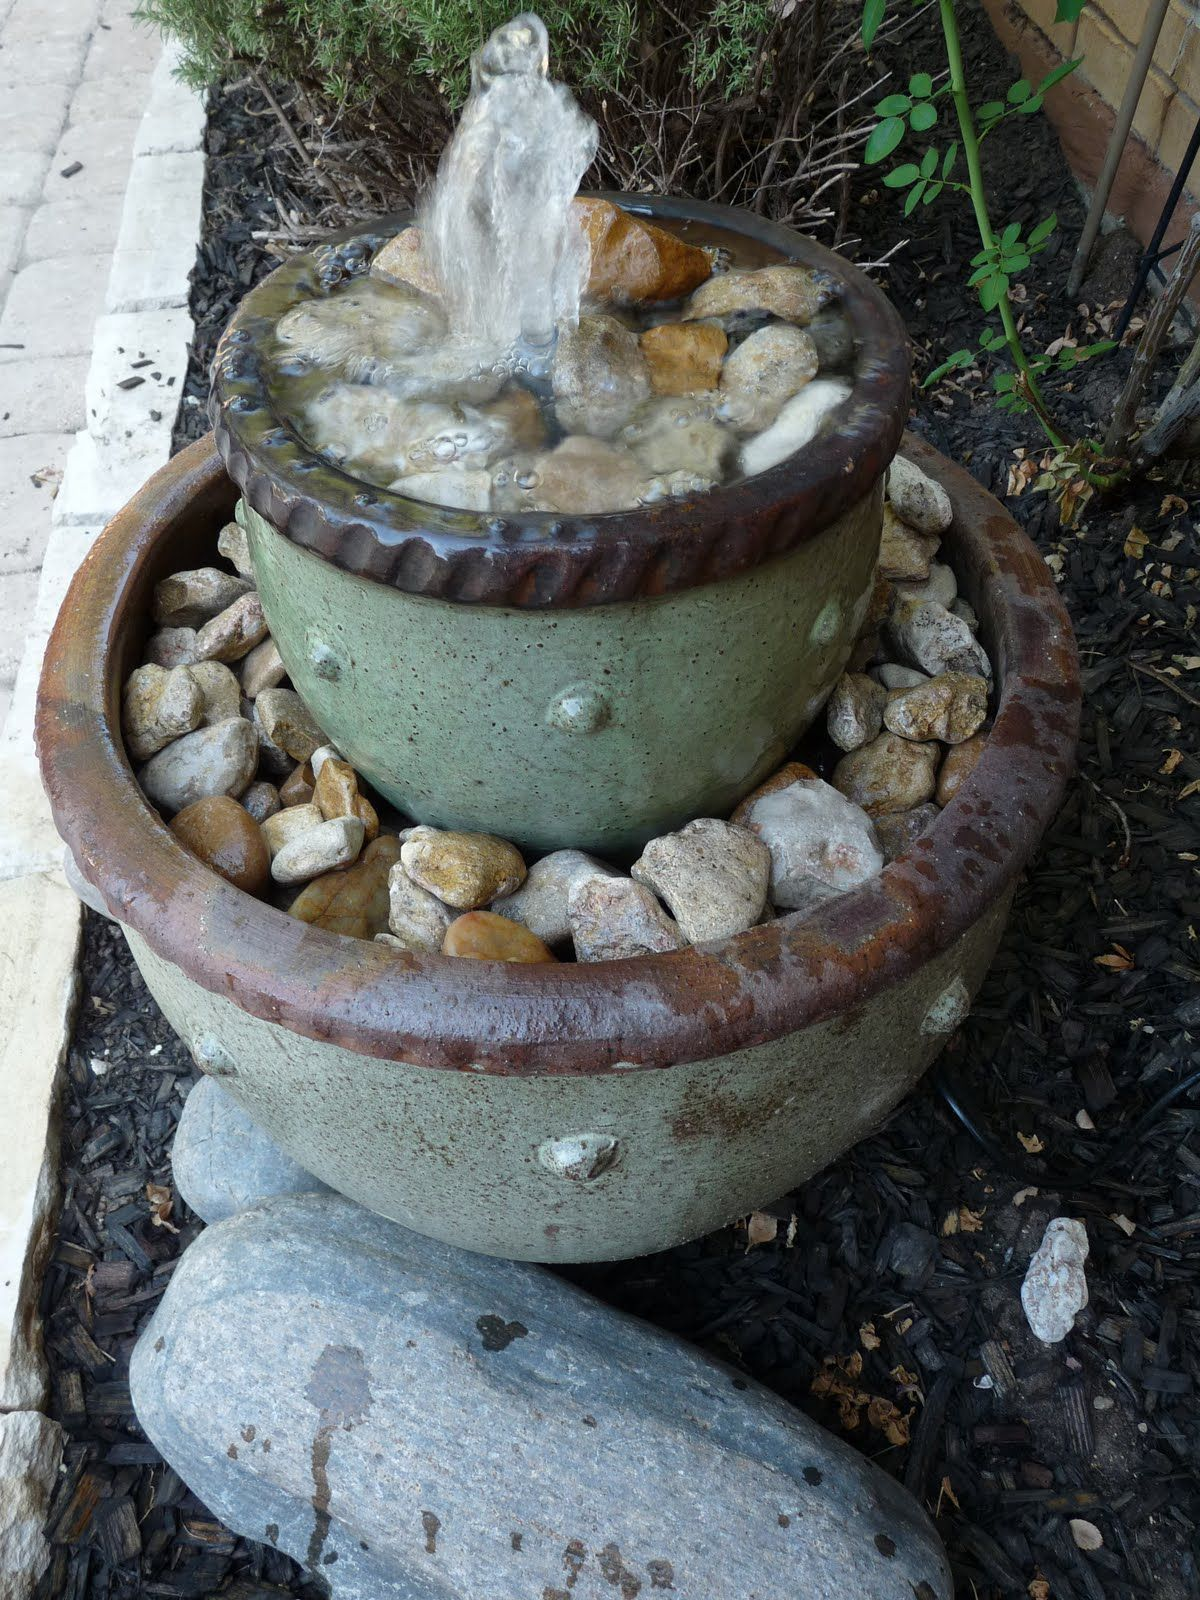 Diy 2 Levels Flower Pot Water Fountain With Rock Design Unique And Pretty Flower Pot Water Founta Diy Garden Fountains Diy Fountain Homemade Water Fountains